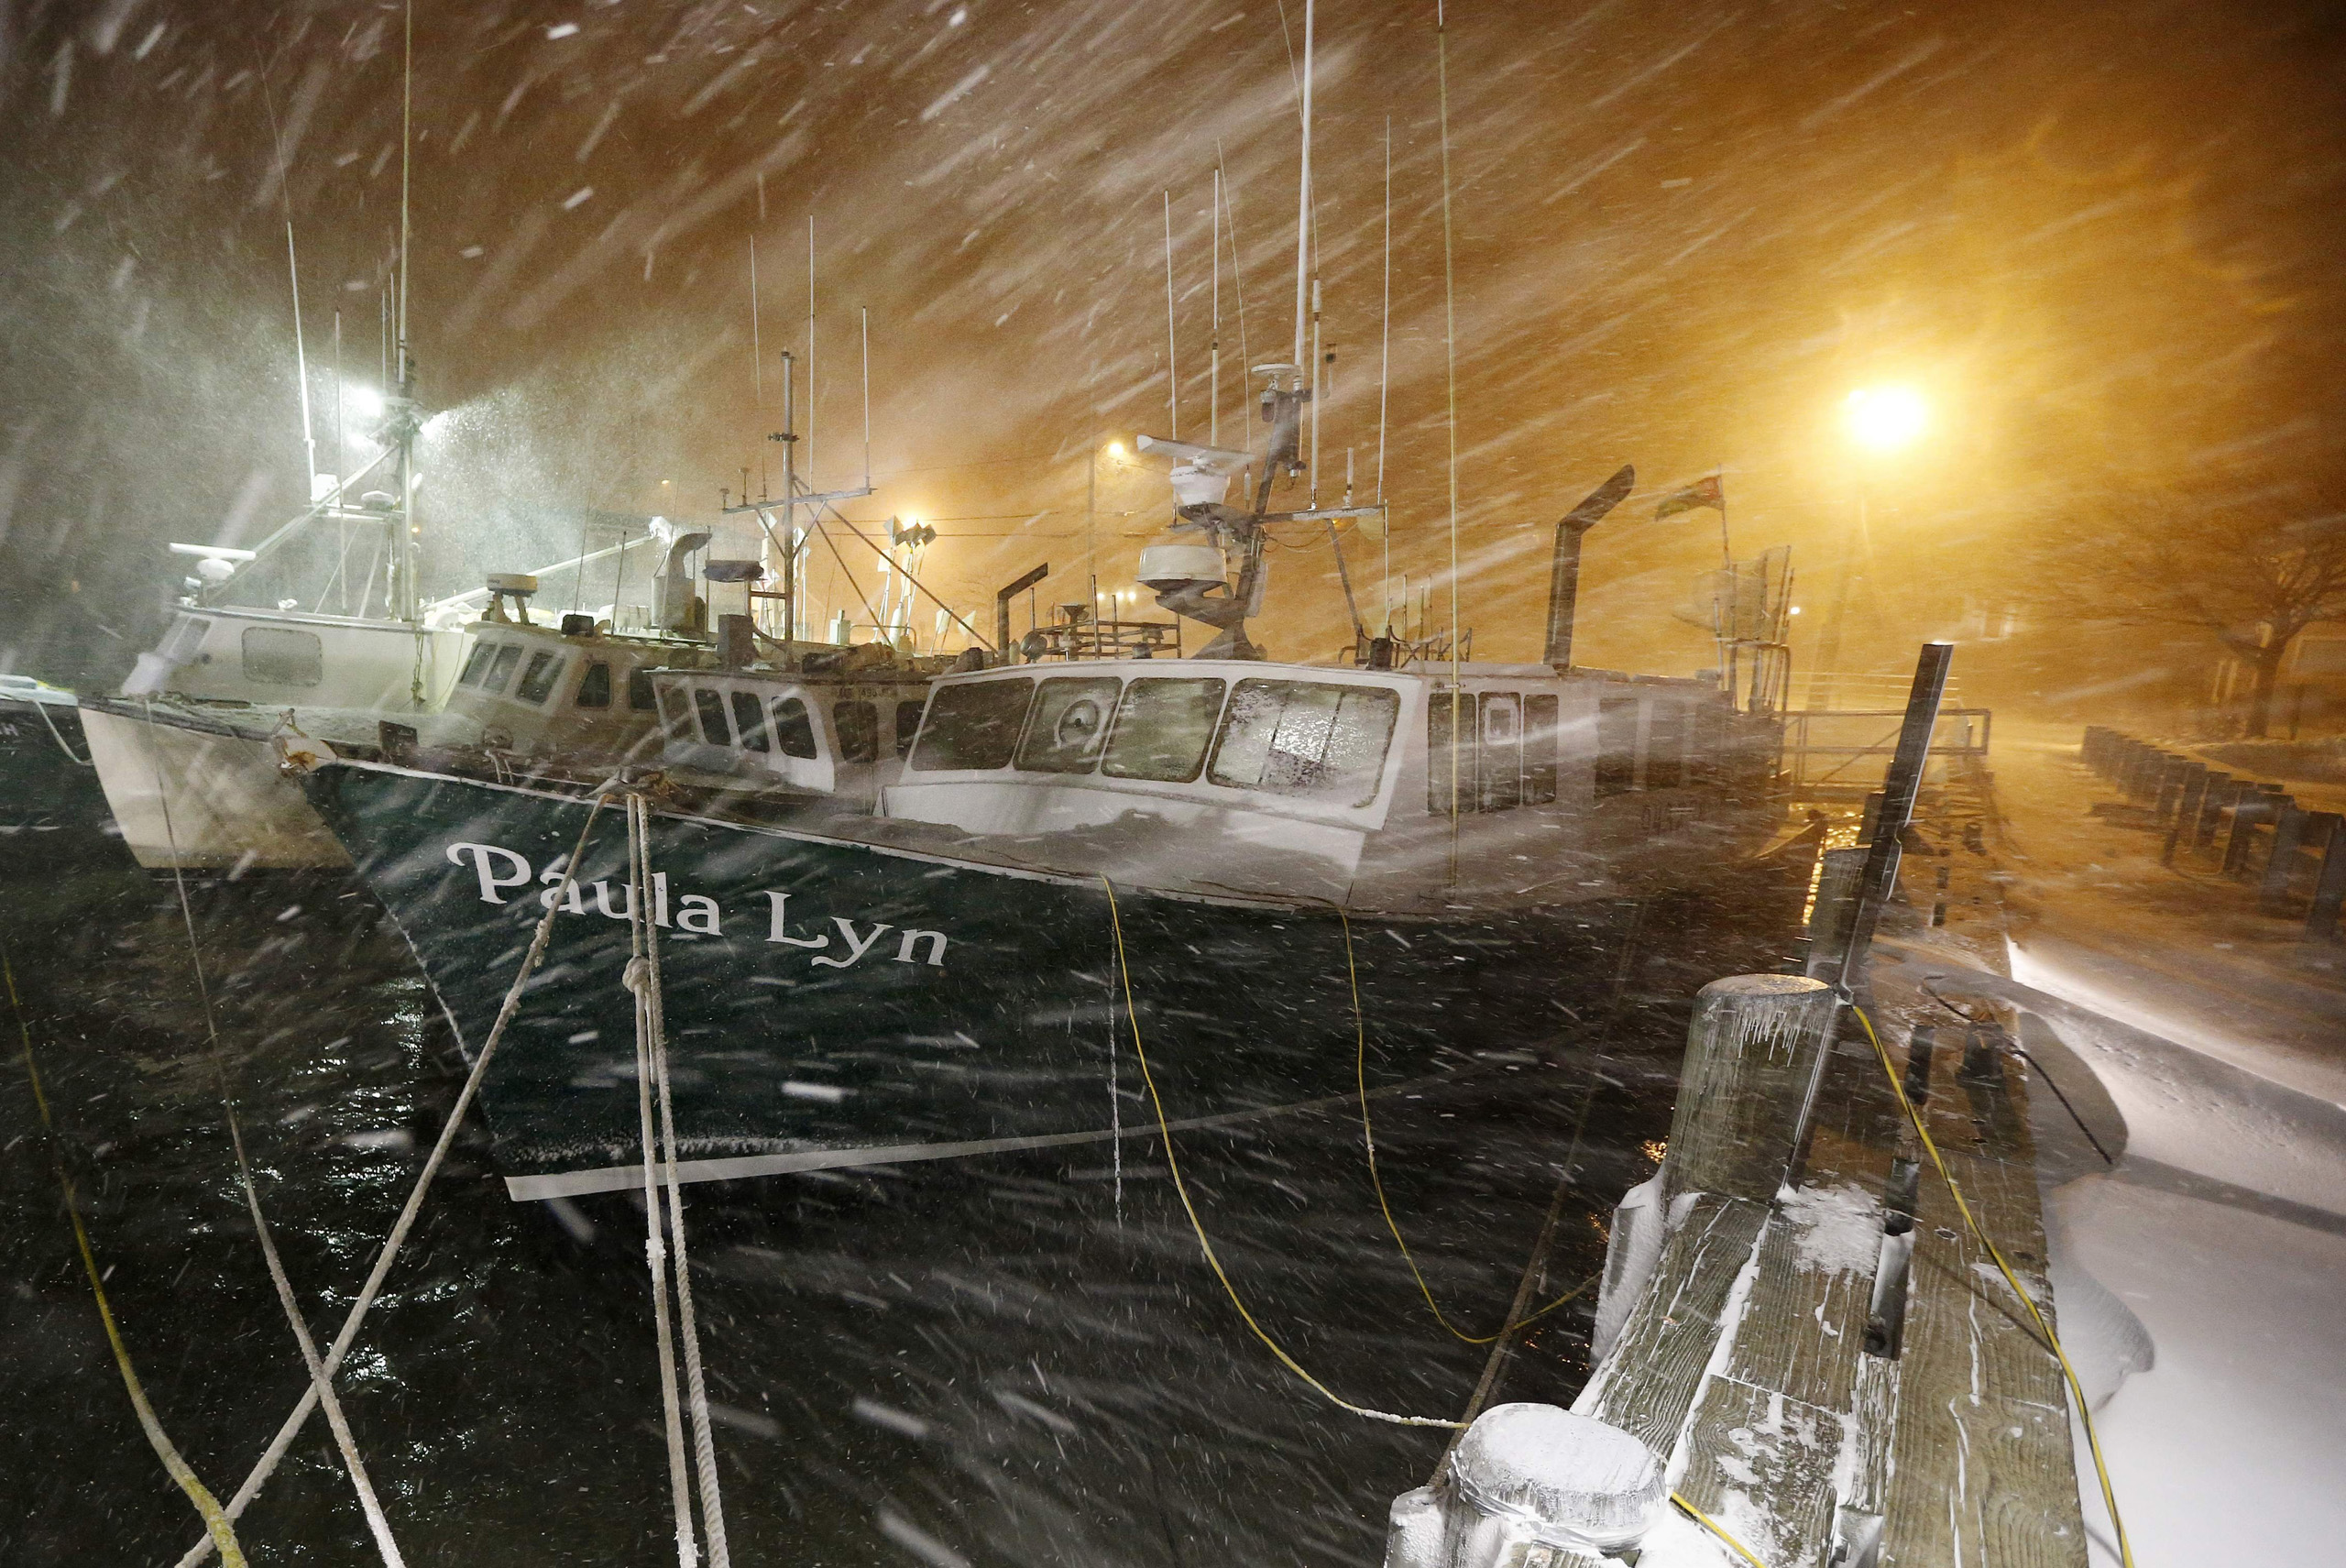 Fishing boats ride out the storm at dock in Scituate, Mass., on Jan. 27, 2015.